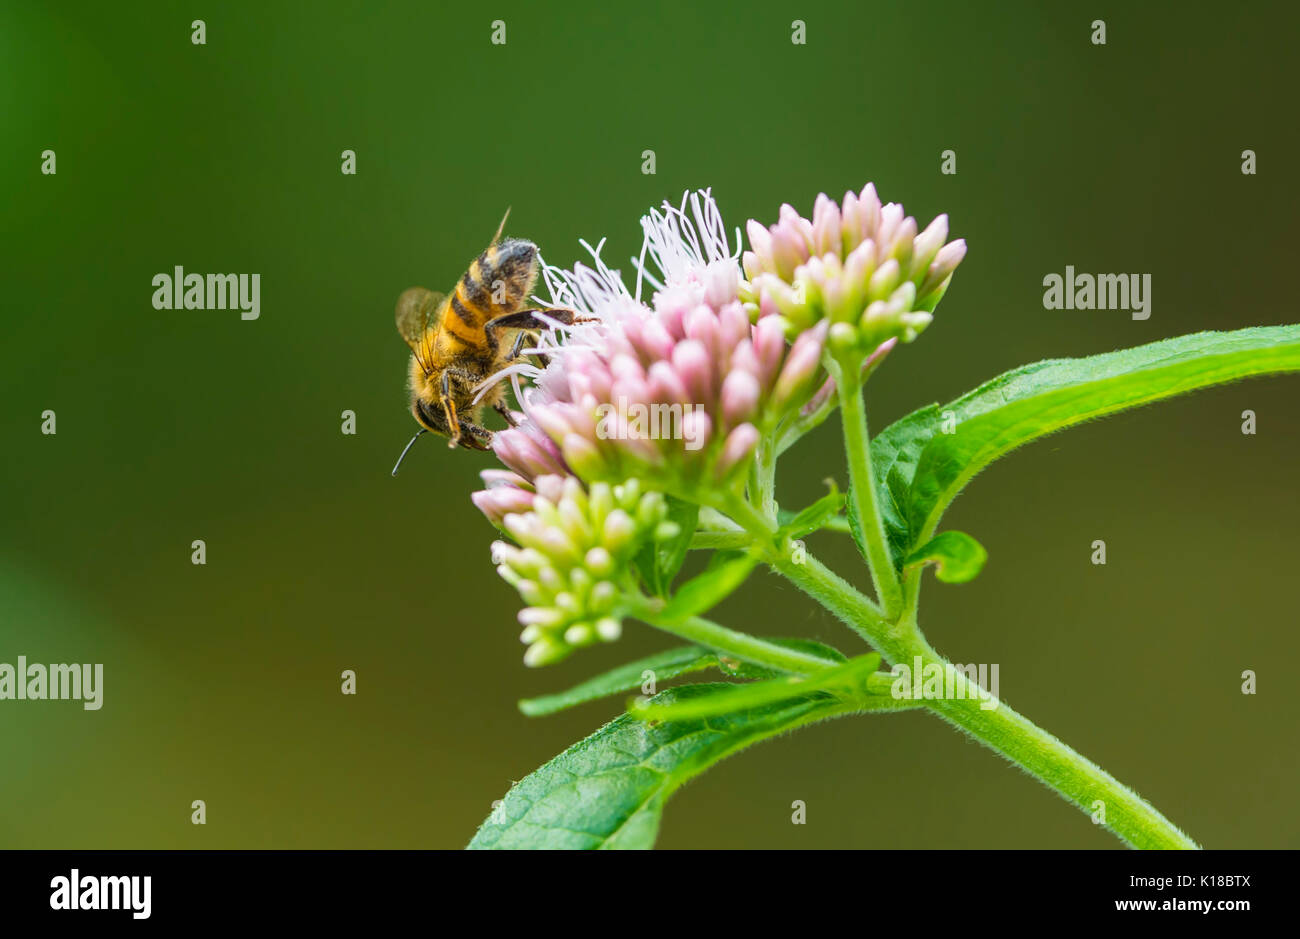 Honey bee on a Eupatorium cannabinum plant, also known as Hemp agrimony or Holy rope, in late Summer in West Sussex, England, UK. - Stock Image